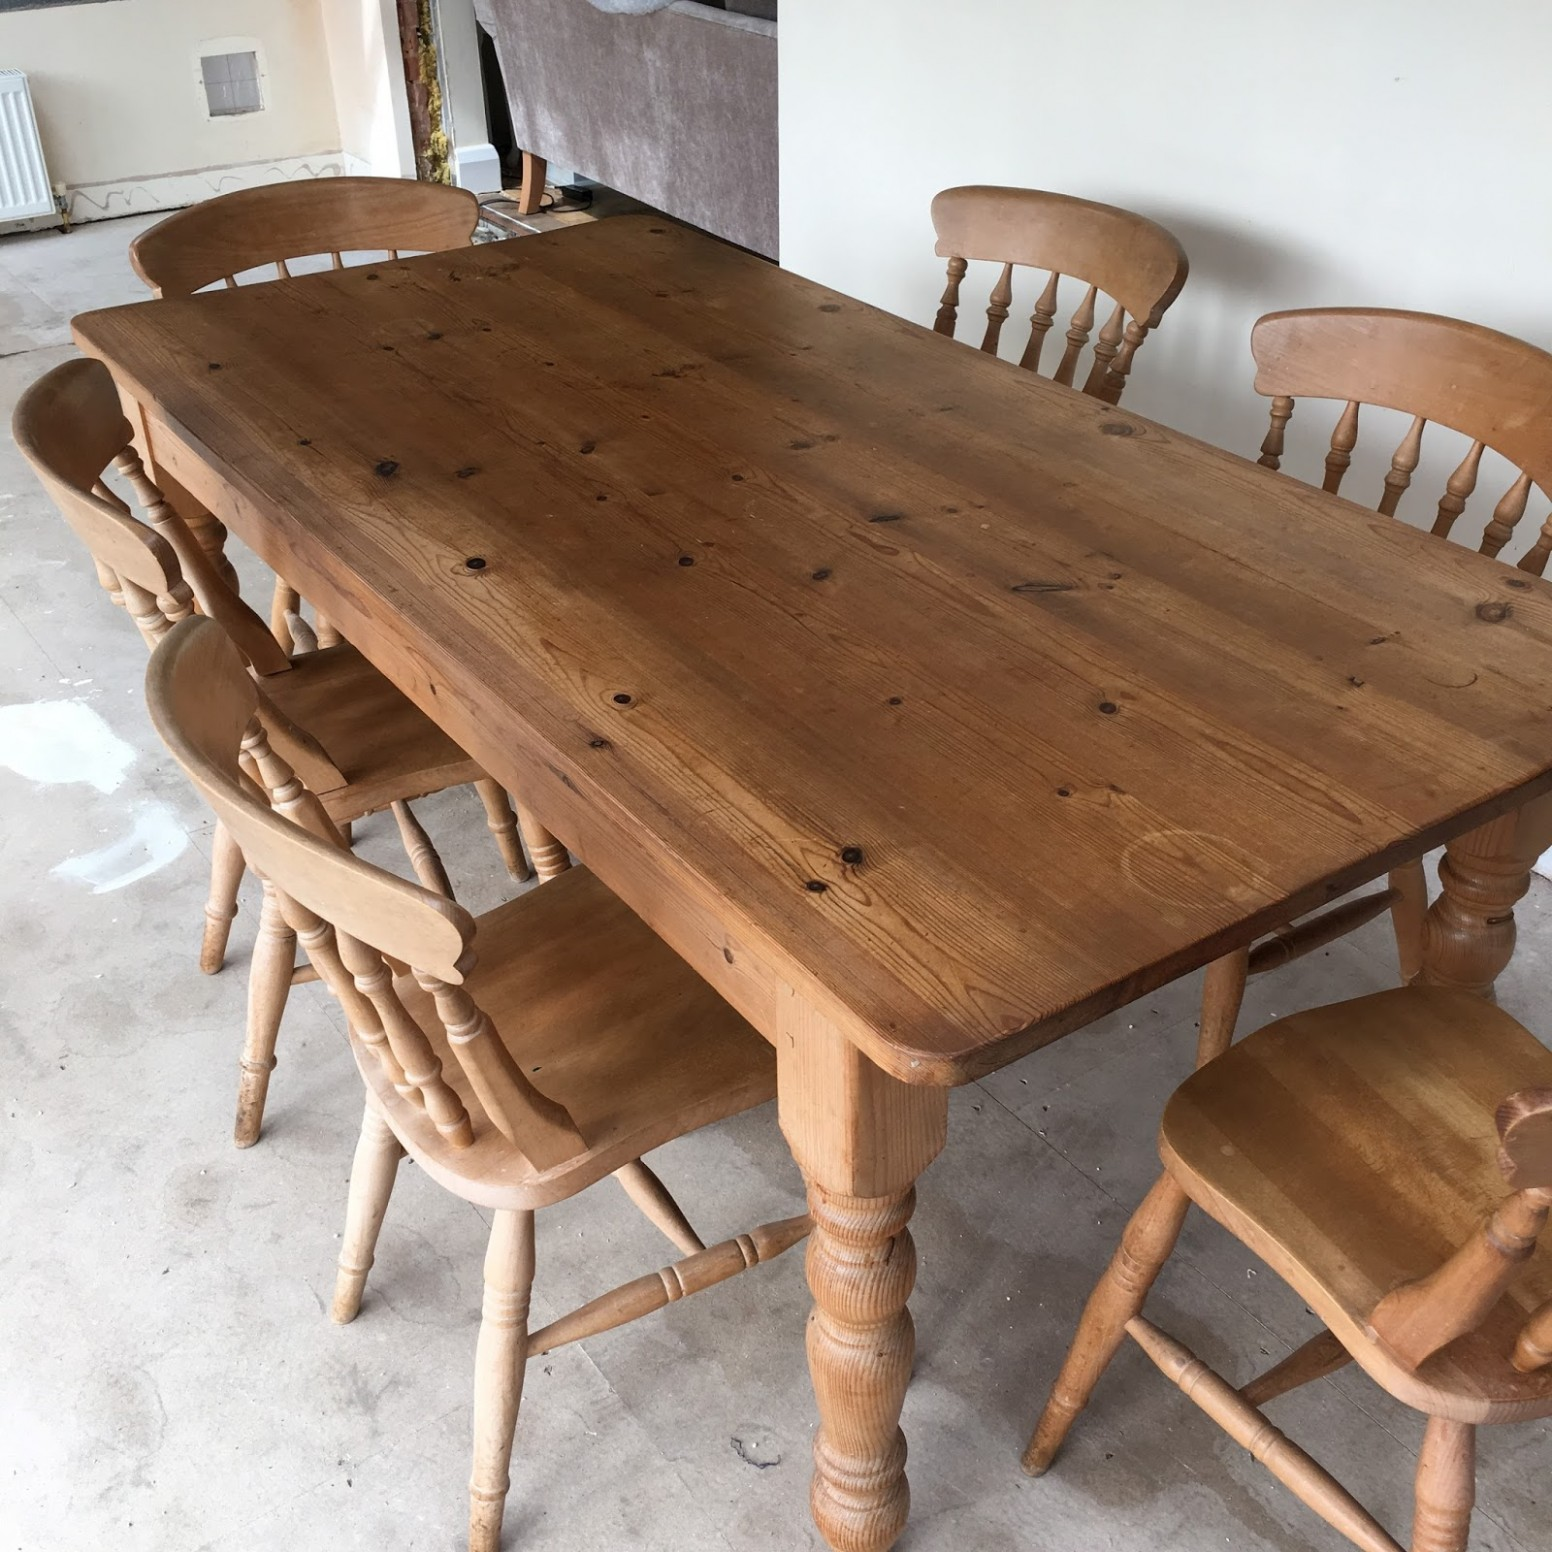 Upcycling A Dining Room Table – The Home That Made Me - Dining Room Upcycle Ideas